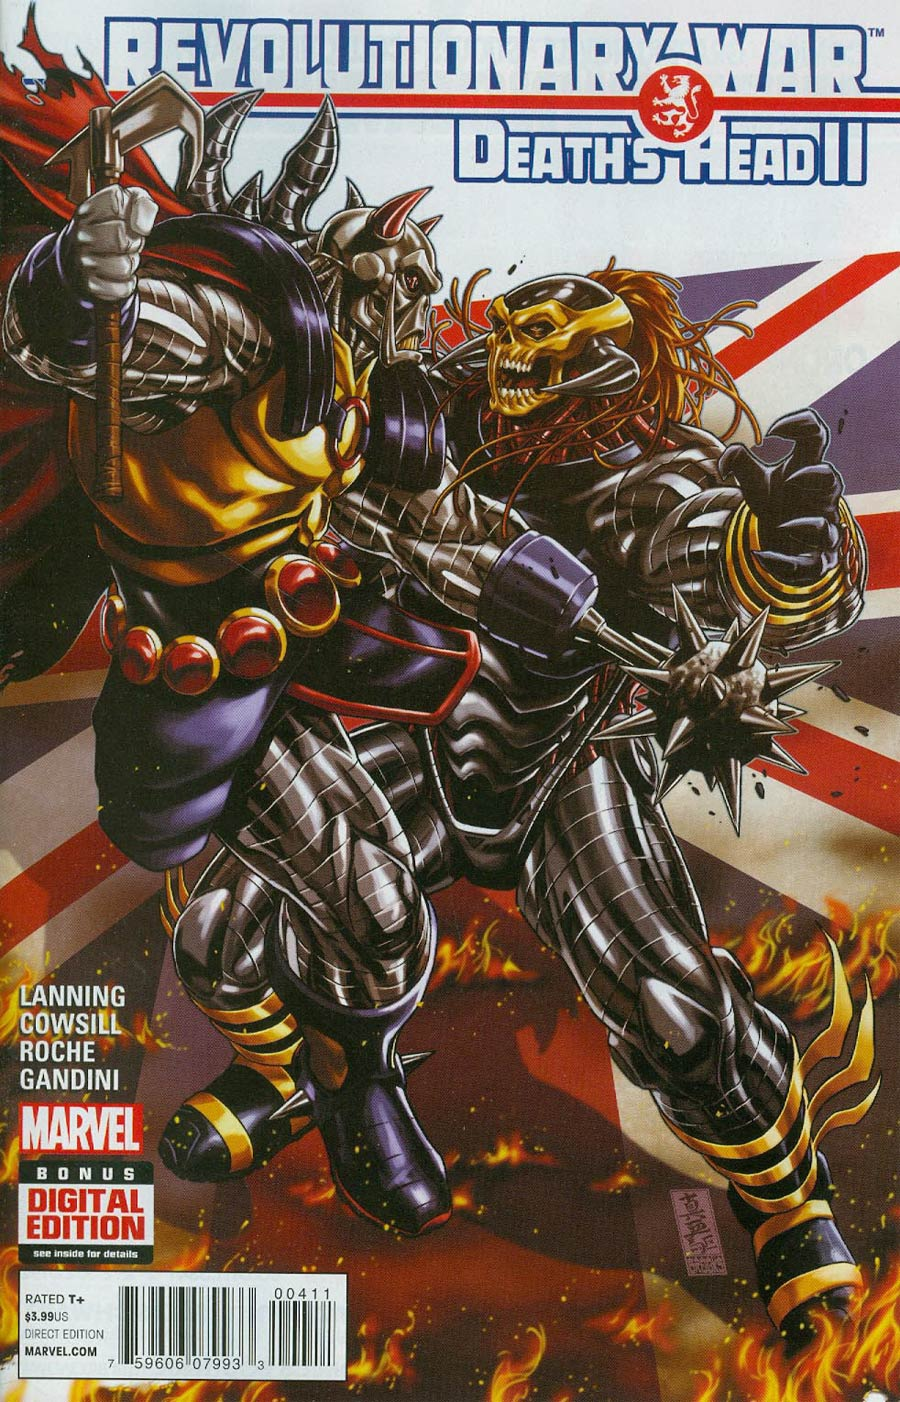 Revolutionary War Deaths Head II #1 Cover A Regular Mark Brooks Cover (Revolutionary War Part 4)